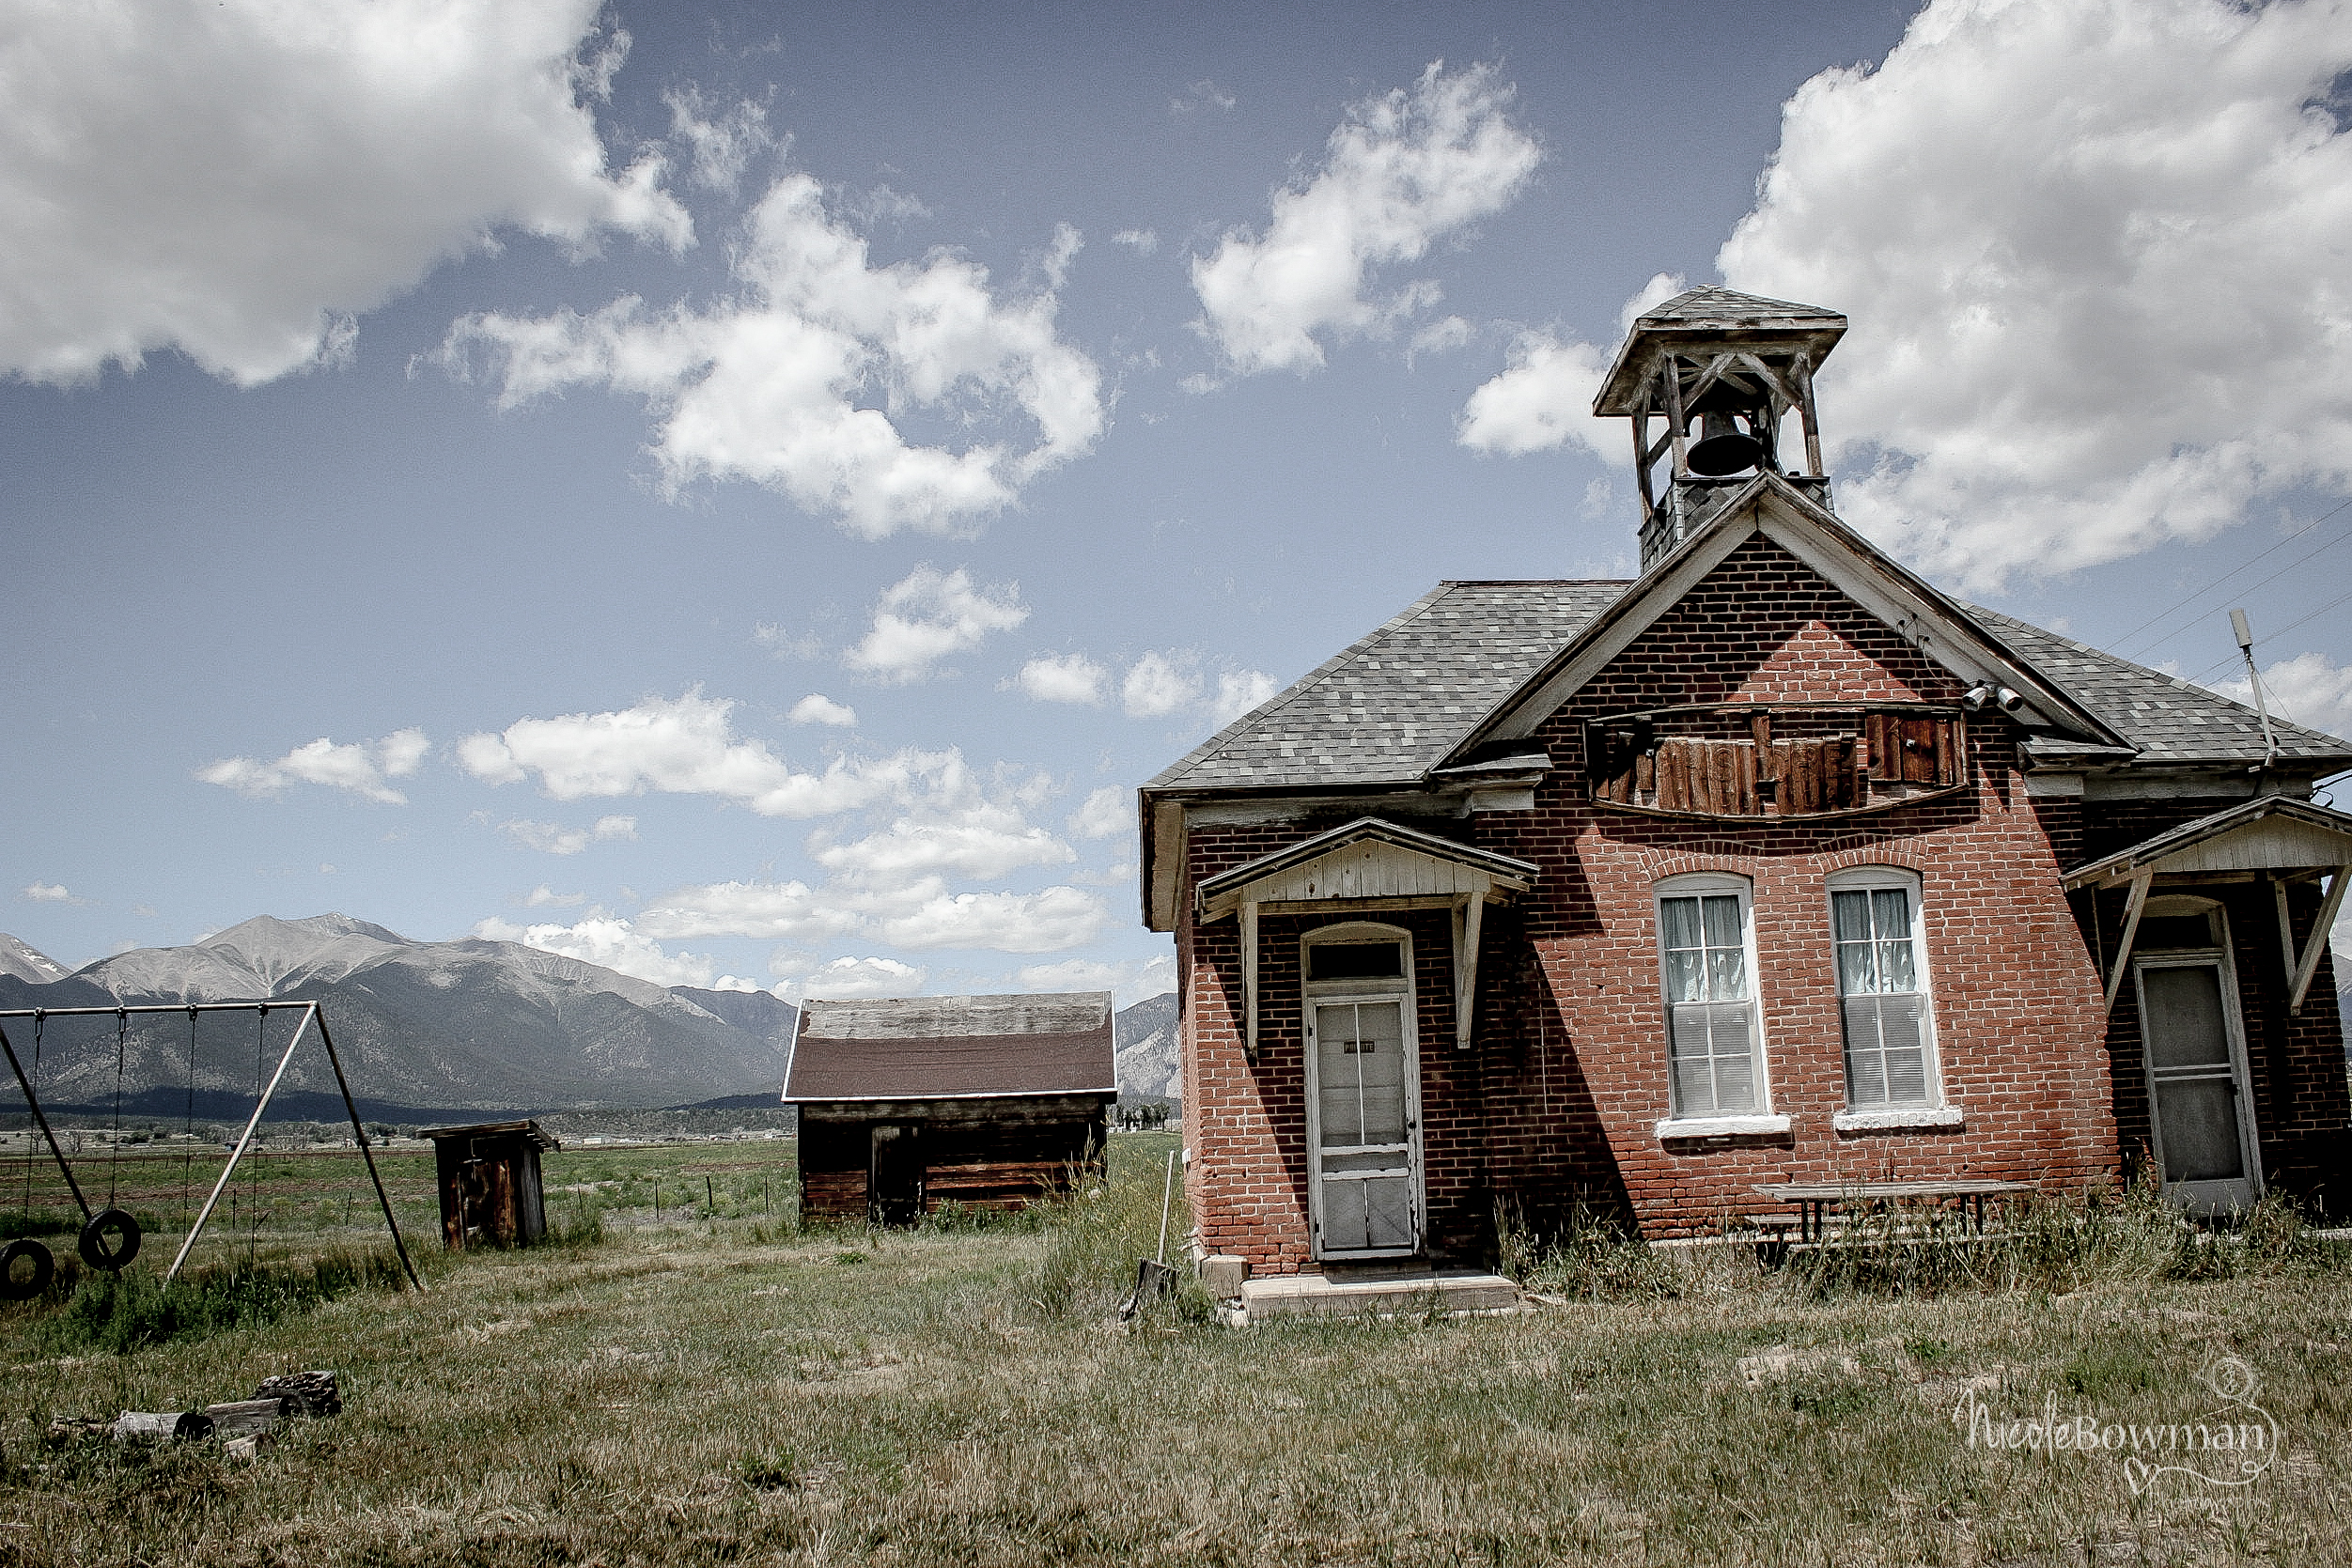 Abandoned buildings of colorado 5 nicole bowman photography for Building a home in colorado